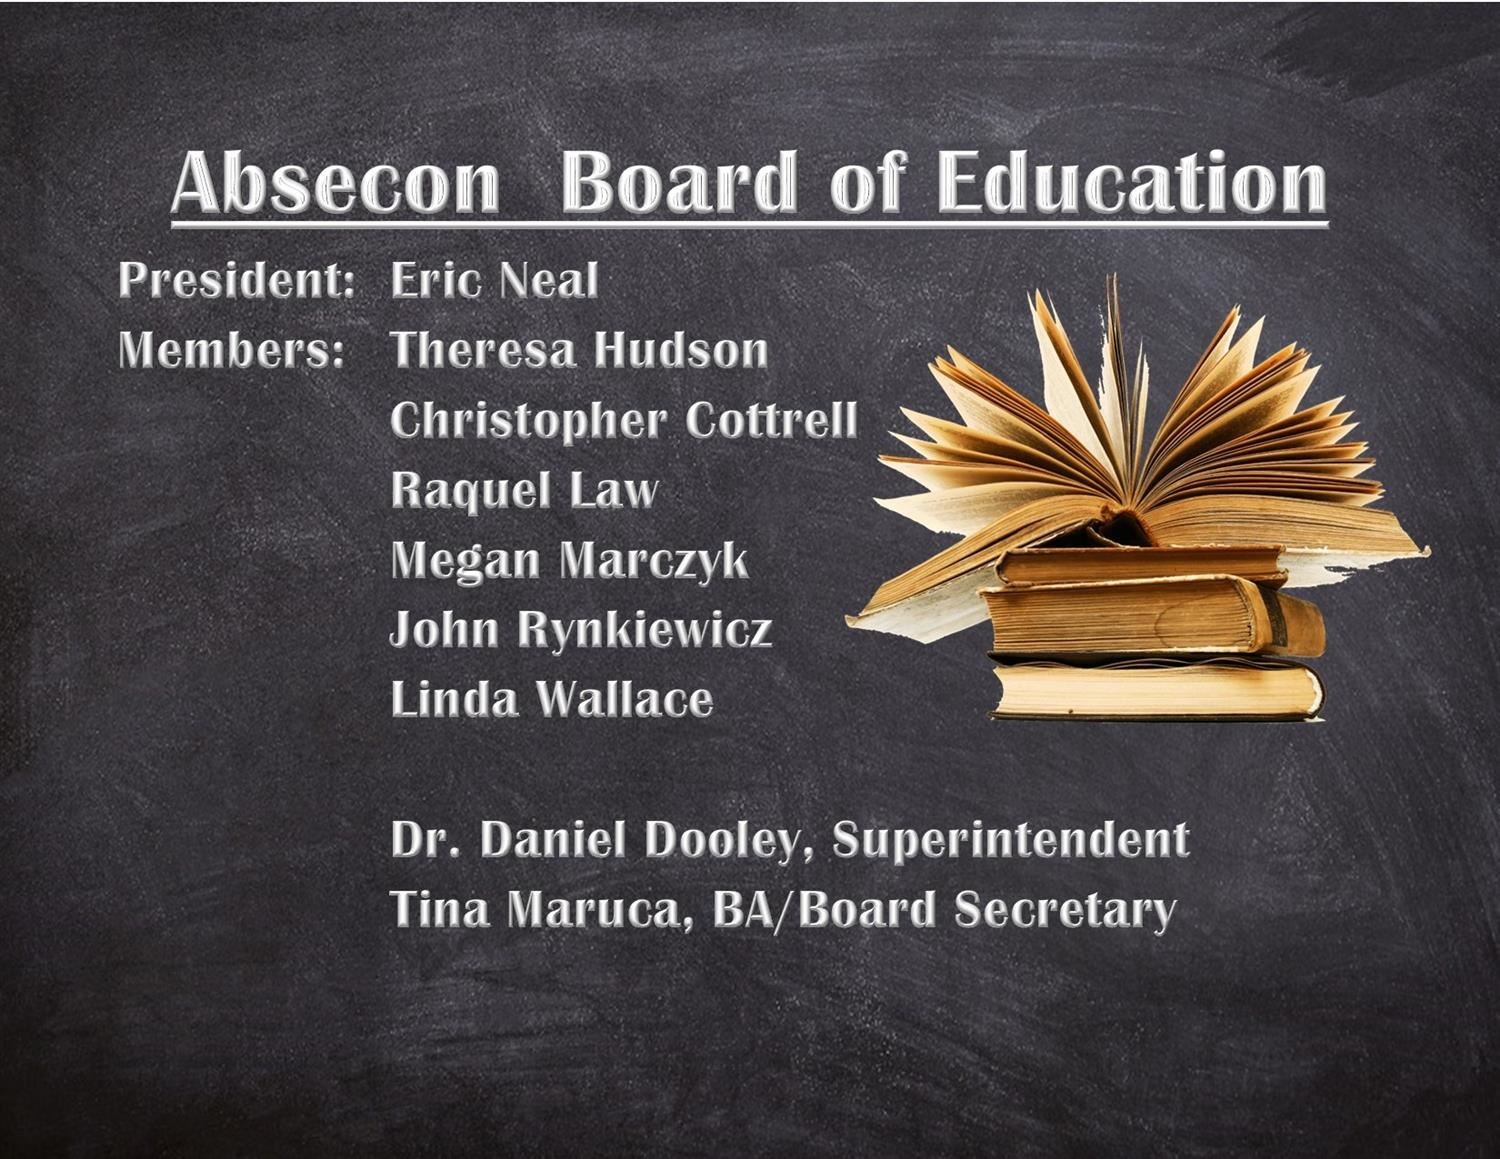 Board of Education Member 2021